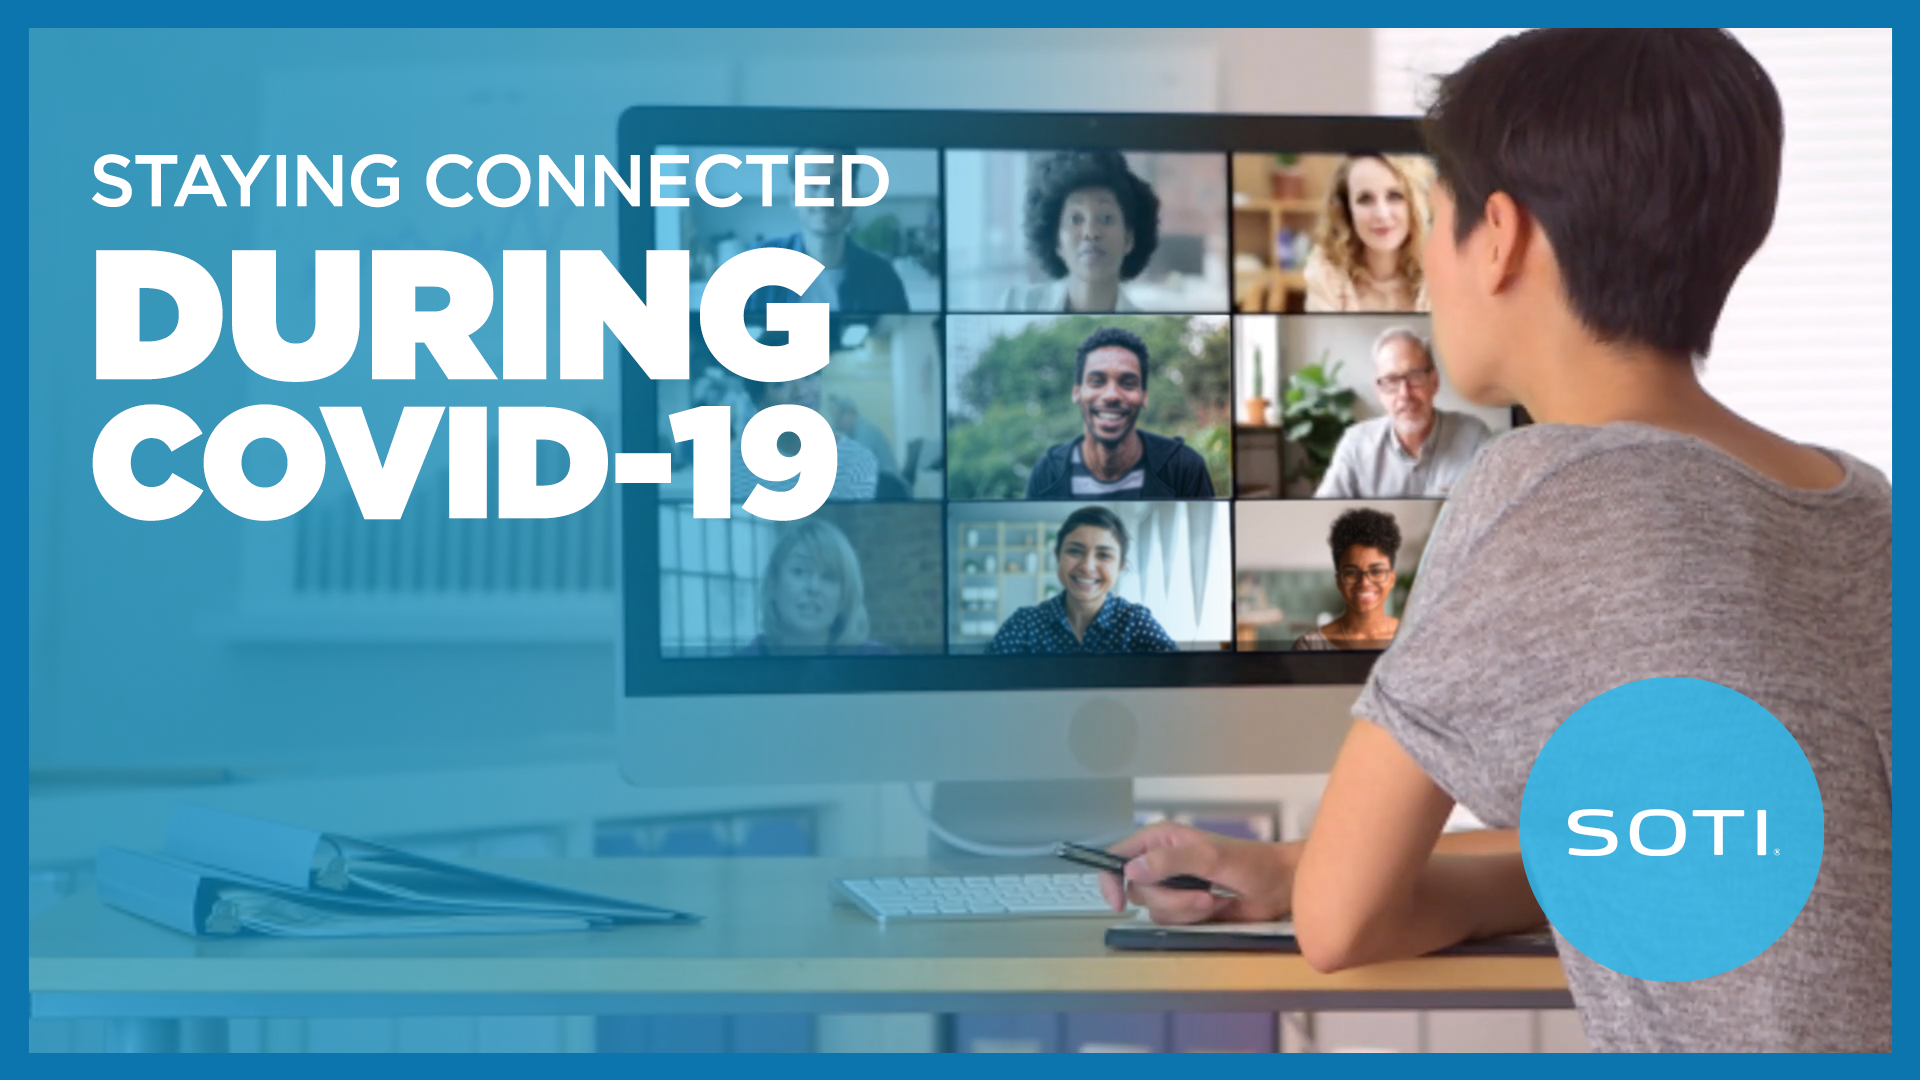 Staying connected during COVID-19